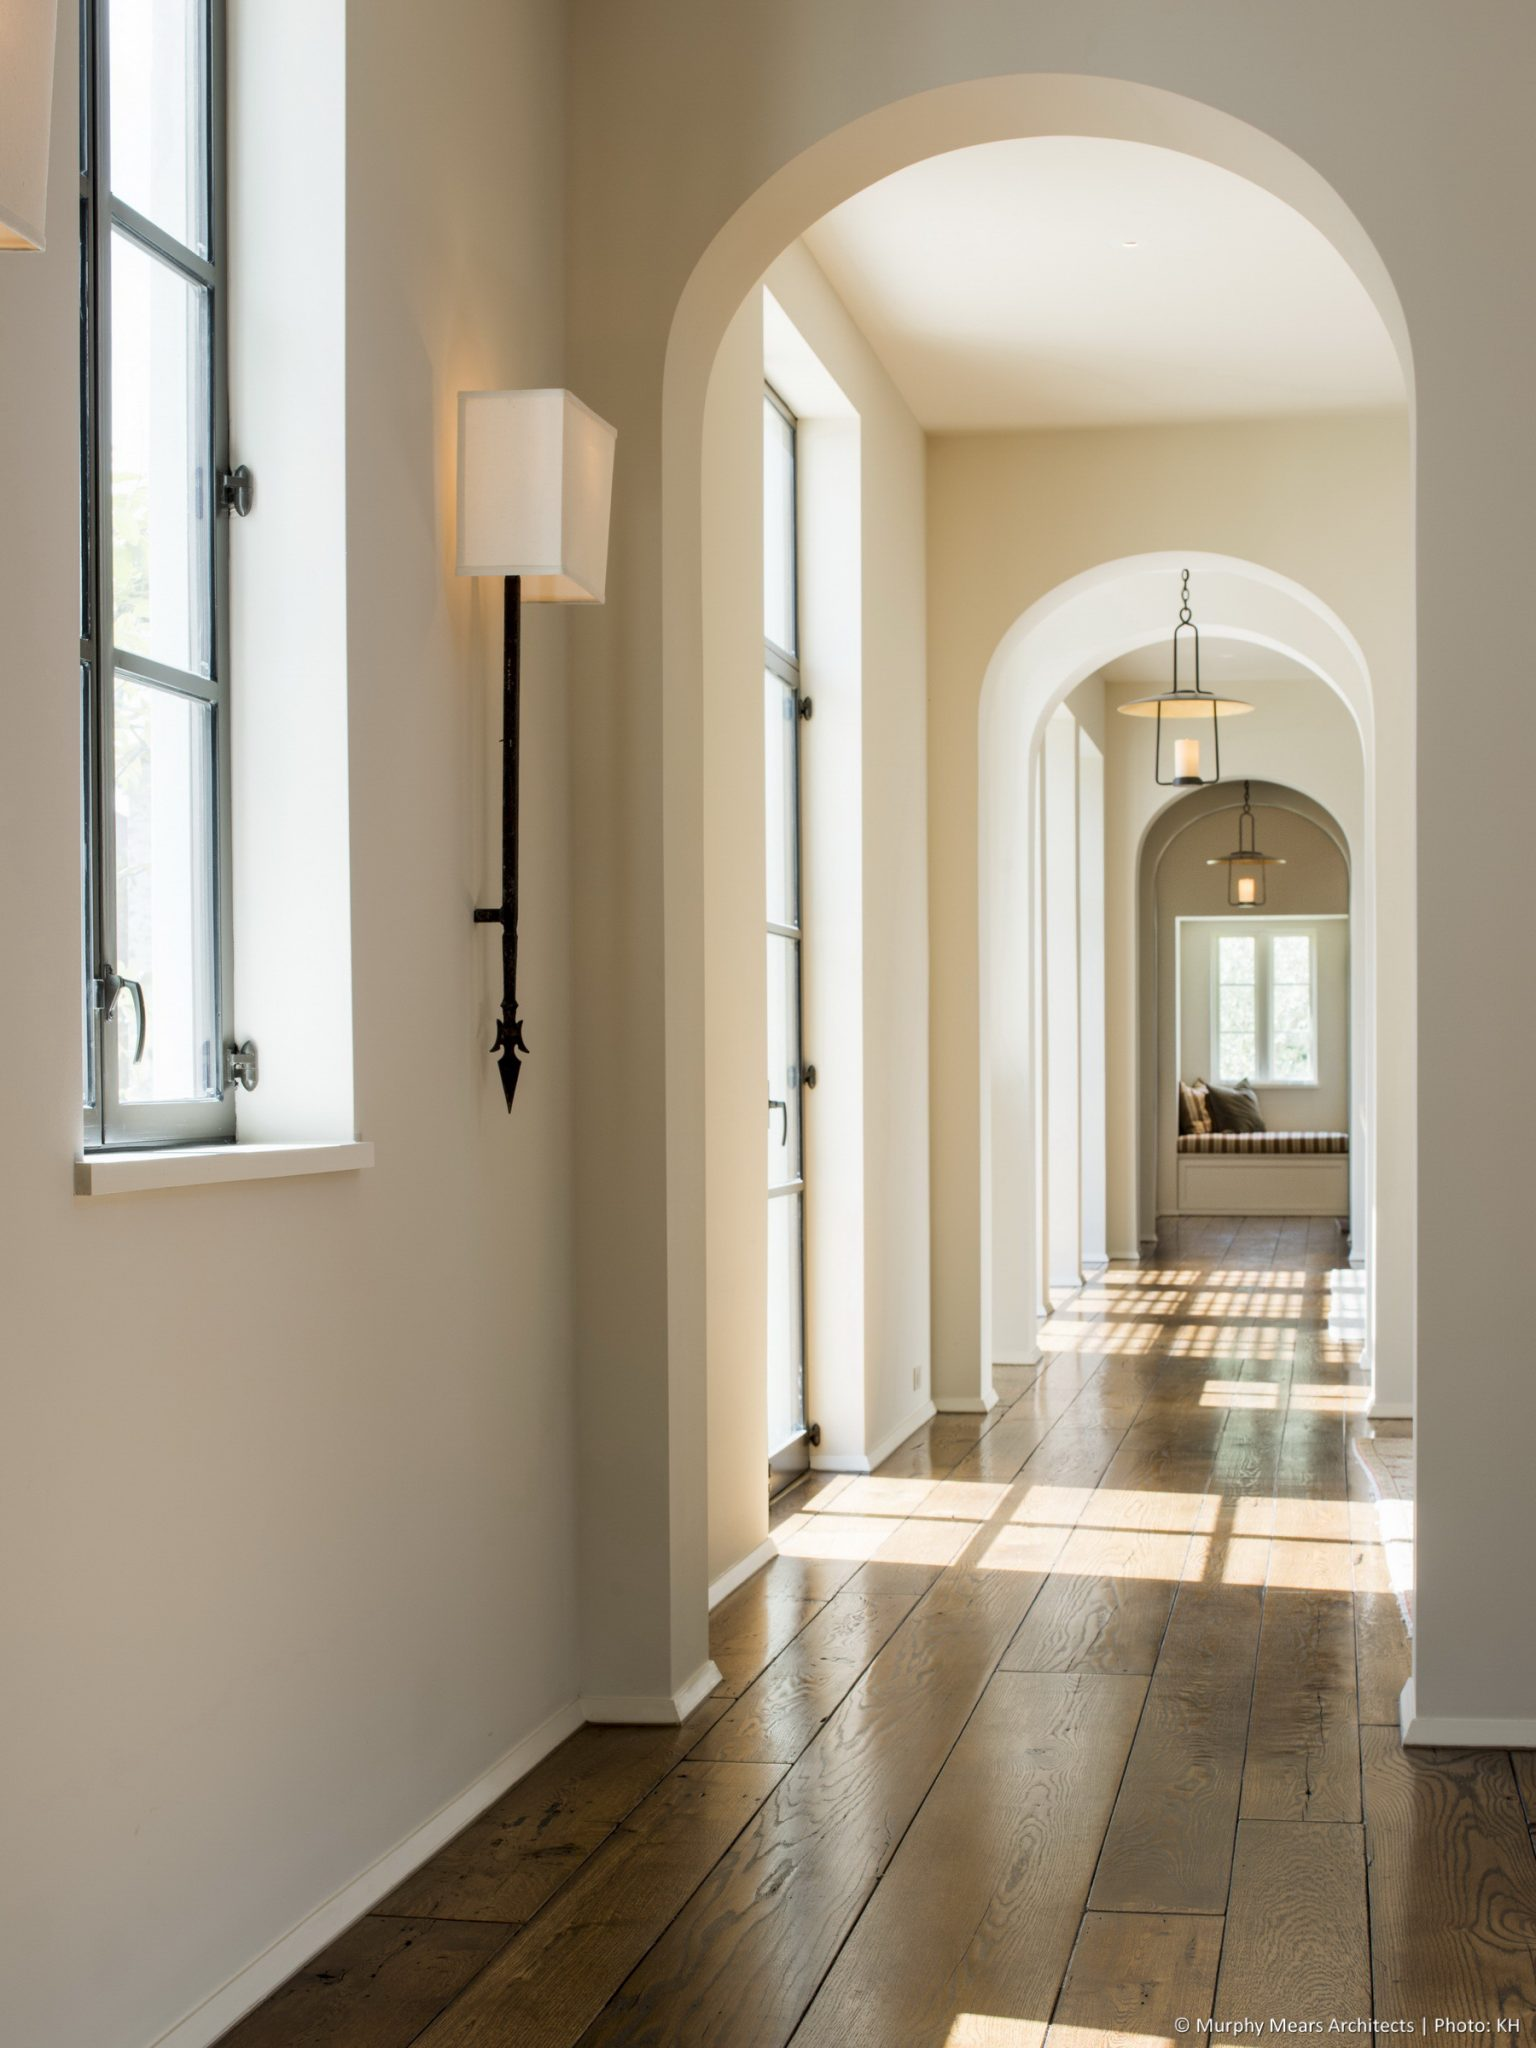 Courtyard House - Looking South along the main corridor, with morning light cast through steel windows and doors.